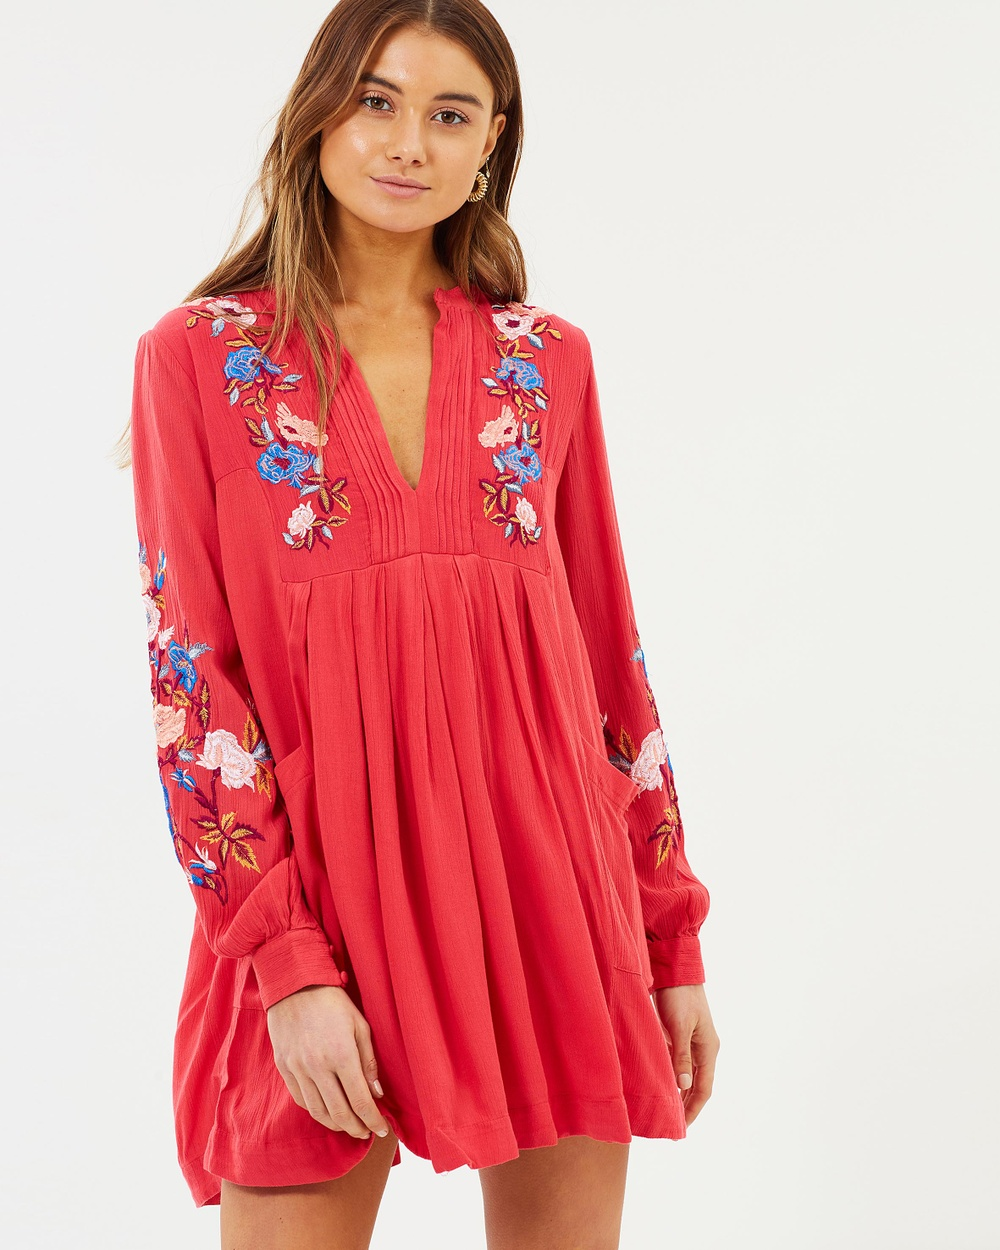 Free People Mia Gauze Embroidered Mini Dresses Red Mia Gauze Embroidered Mini